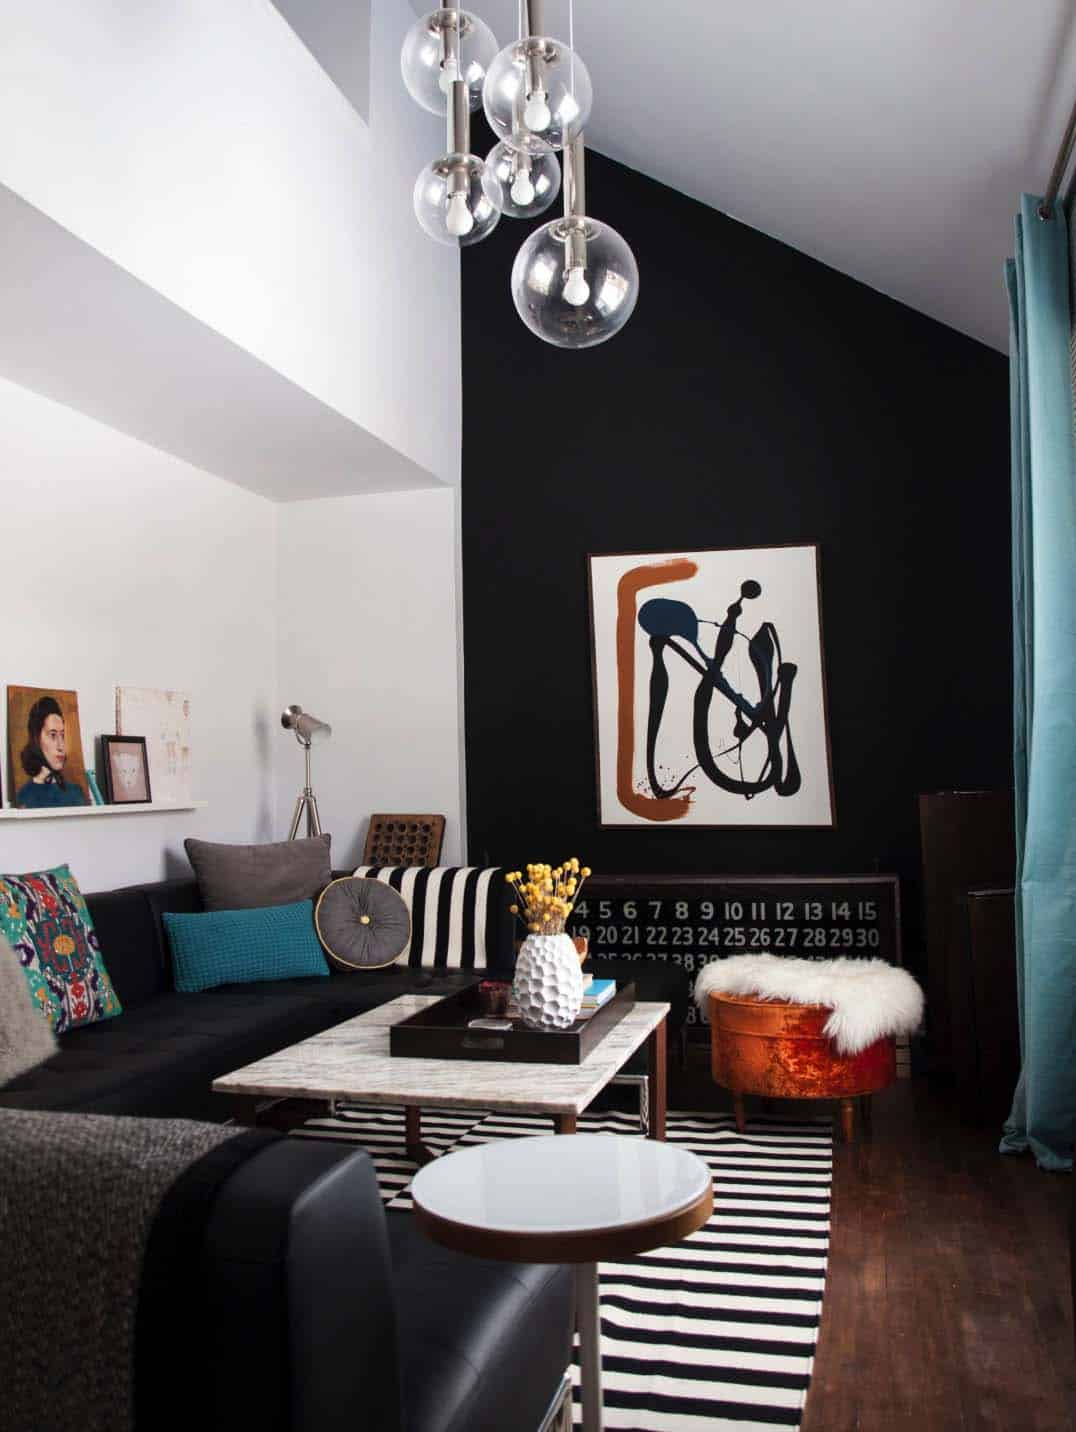 wall pictures living room interior design decorating ideas for small rooms 28 gorgeous with black walls that create cozy drama contemporary